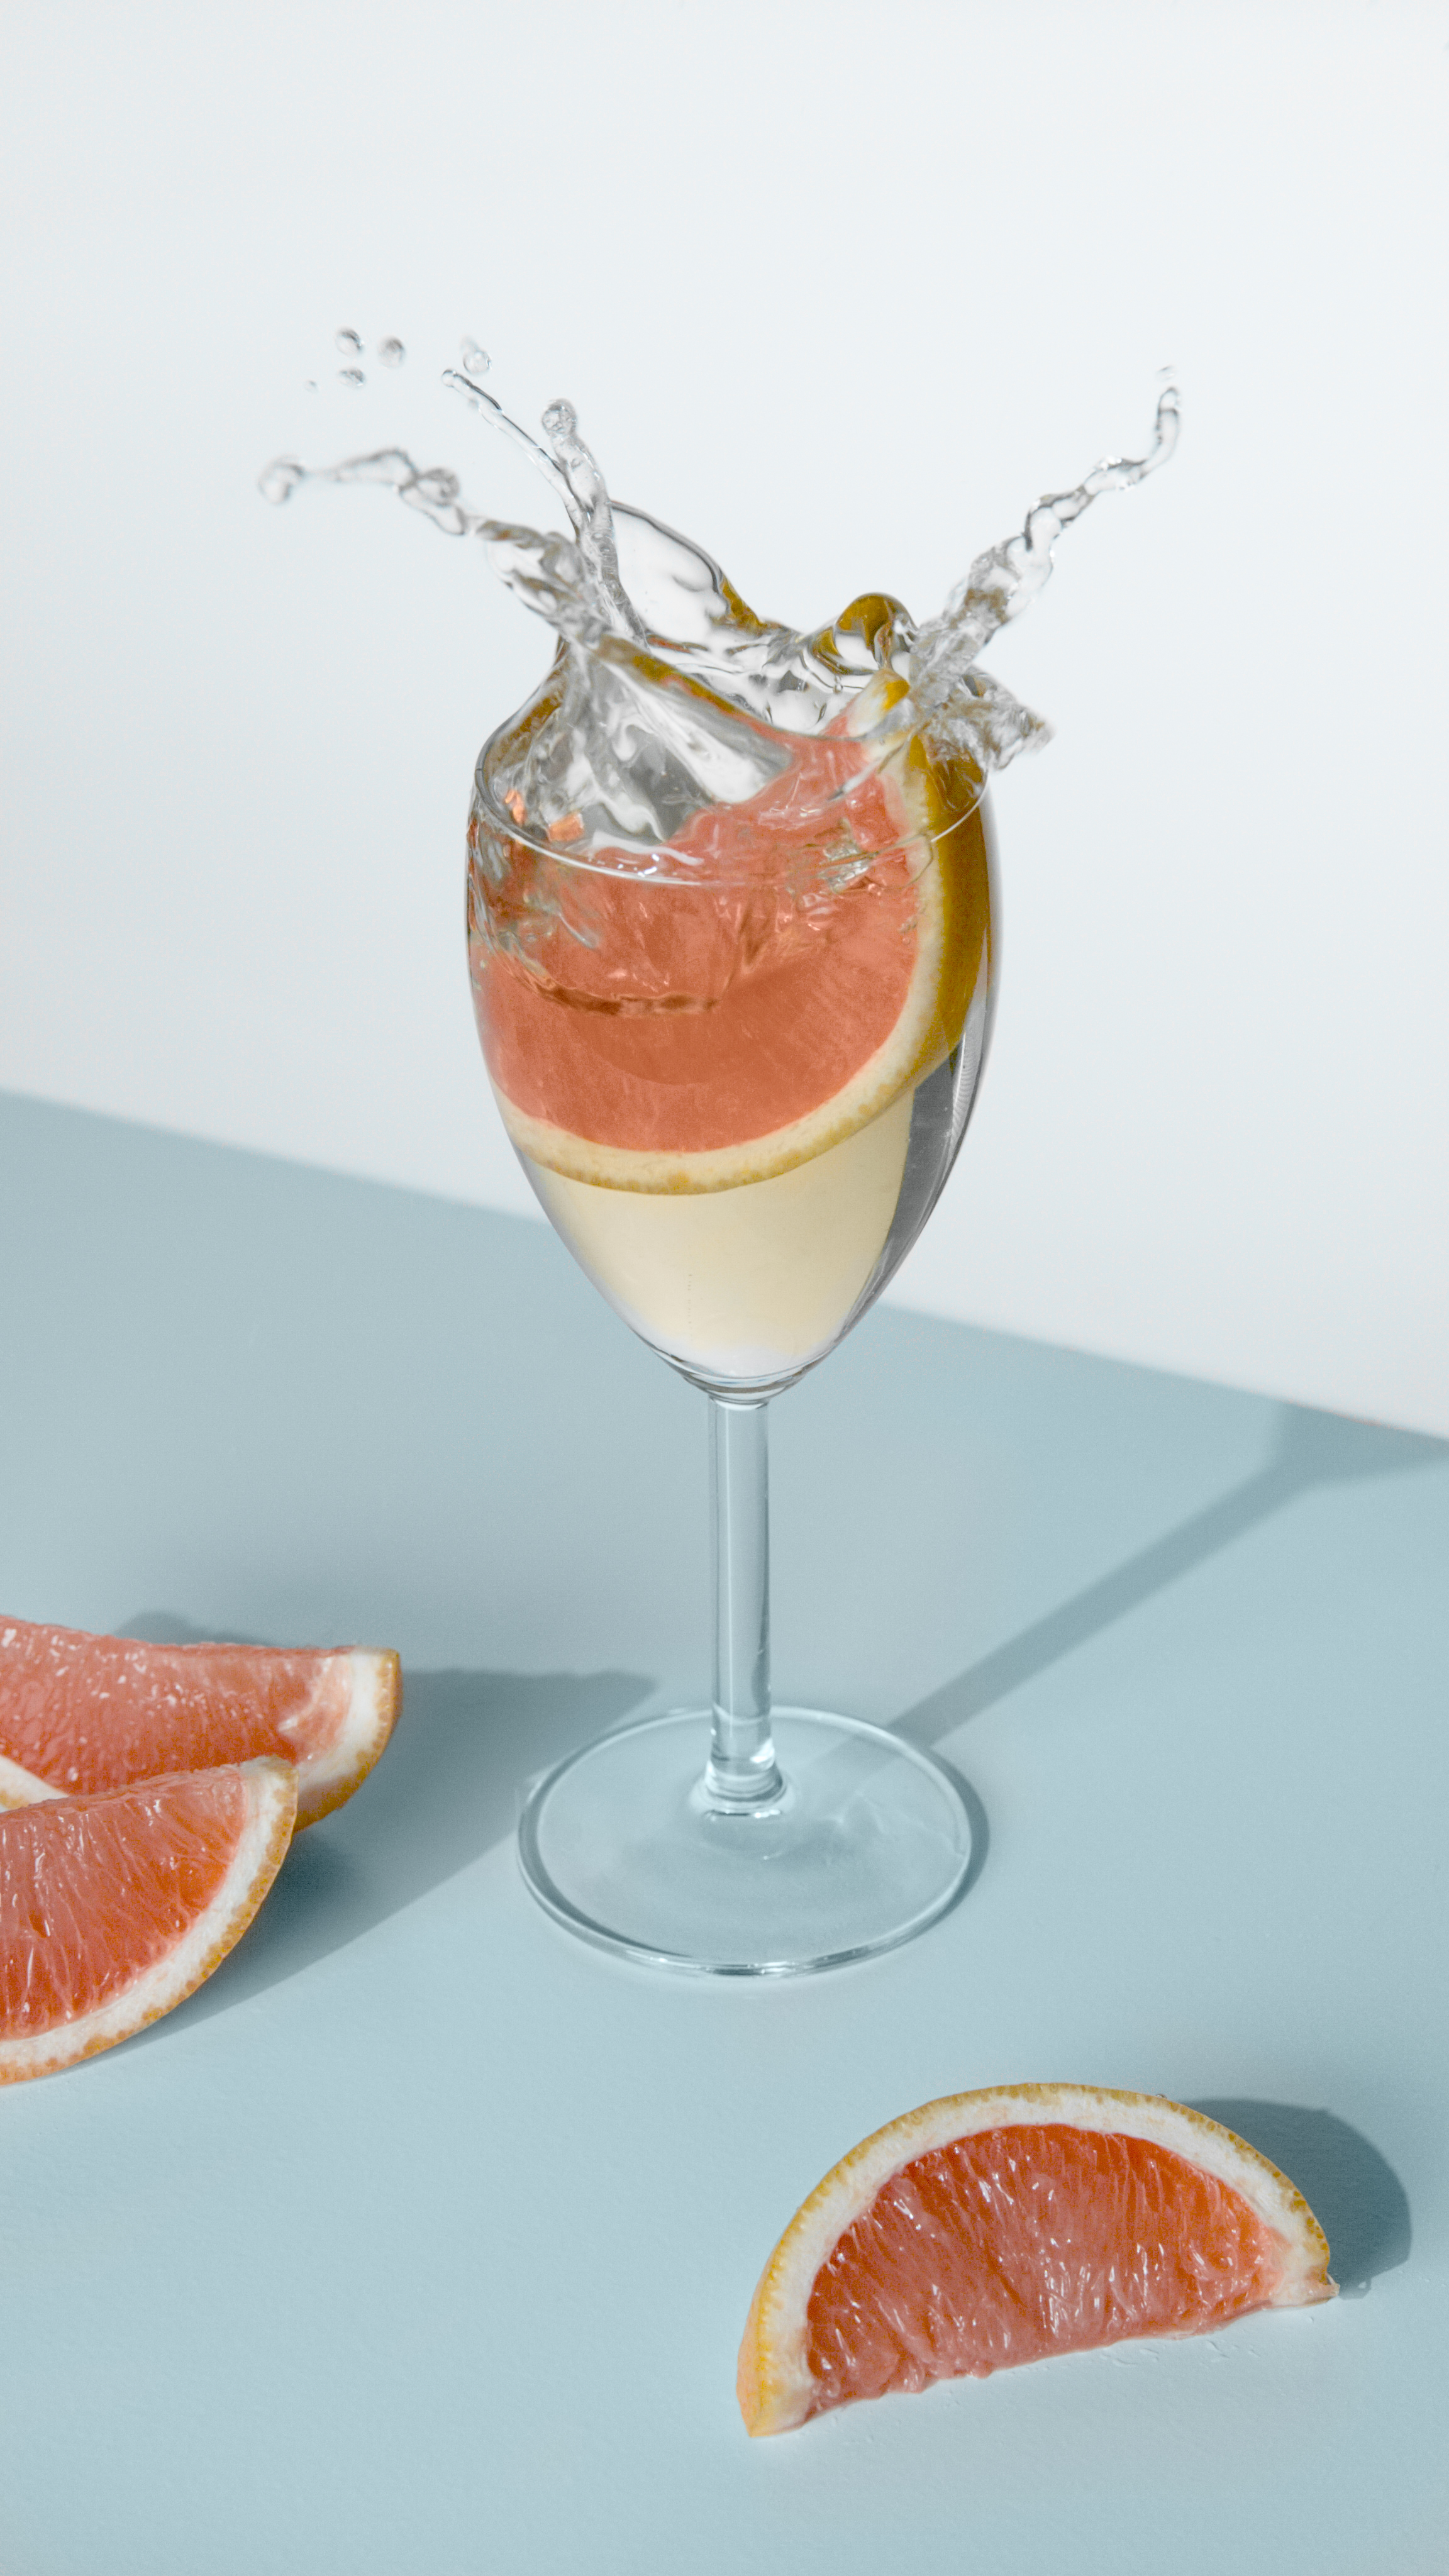 Grapefruit still-1.jpg